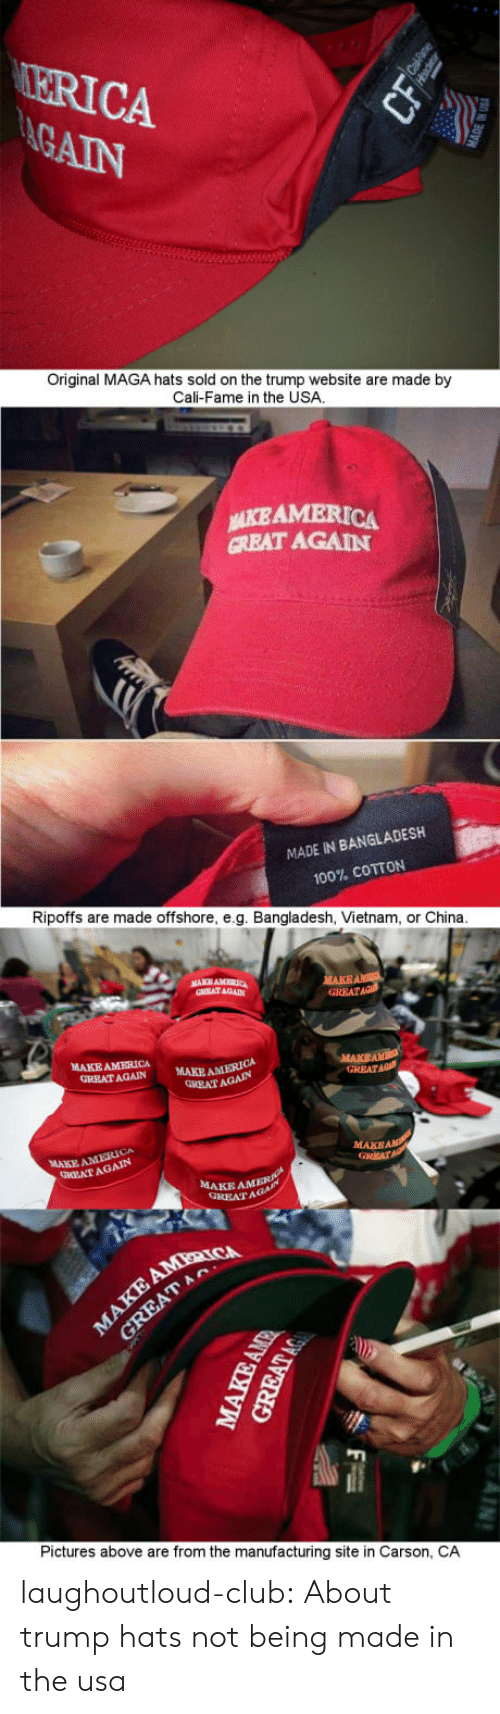 America, Anaconda, and Club: ERICA  Original MAGA hats sold on the trump website are made by  Cali-Fame in the USA  NİEAMERICA  CREAT AGAIN  MADE IN BANGLADESH  100% COTTON  Ripoffs are made offshore, e.g. Bangladesh, Vietnam, or China  RRAT AGAIN  GRRATAa  MAKE AMERICA  GREATAGAIN  MAKE AMERICA  GREAT AGAIN  MAKE AMERICA  EATAGAIN  MAKE  GREAT  AMER  GREATA  Pictures above are from the manufacturing site in Carson, CA laughoutloud-club:  About trump hats not being made in the usa